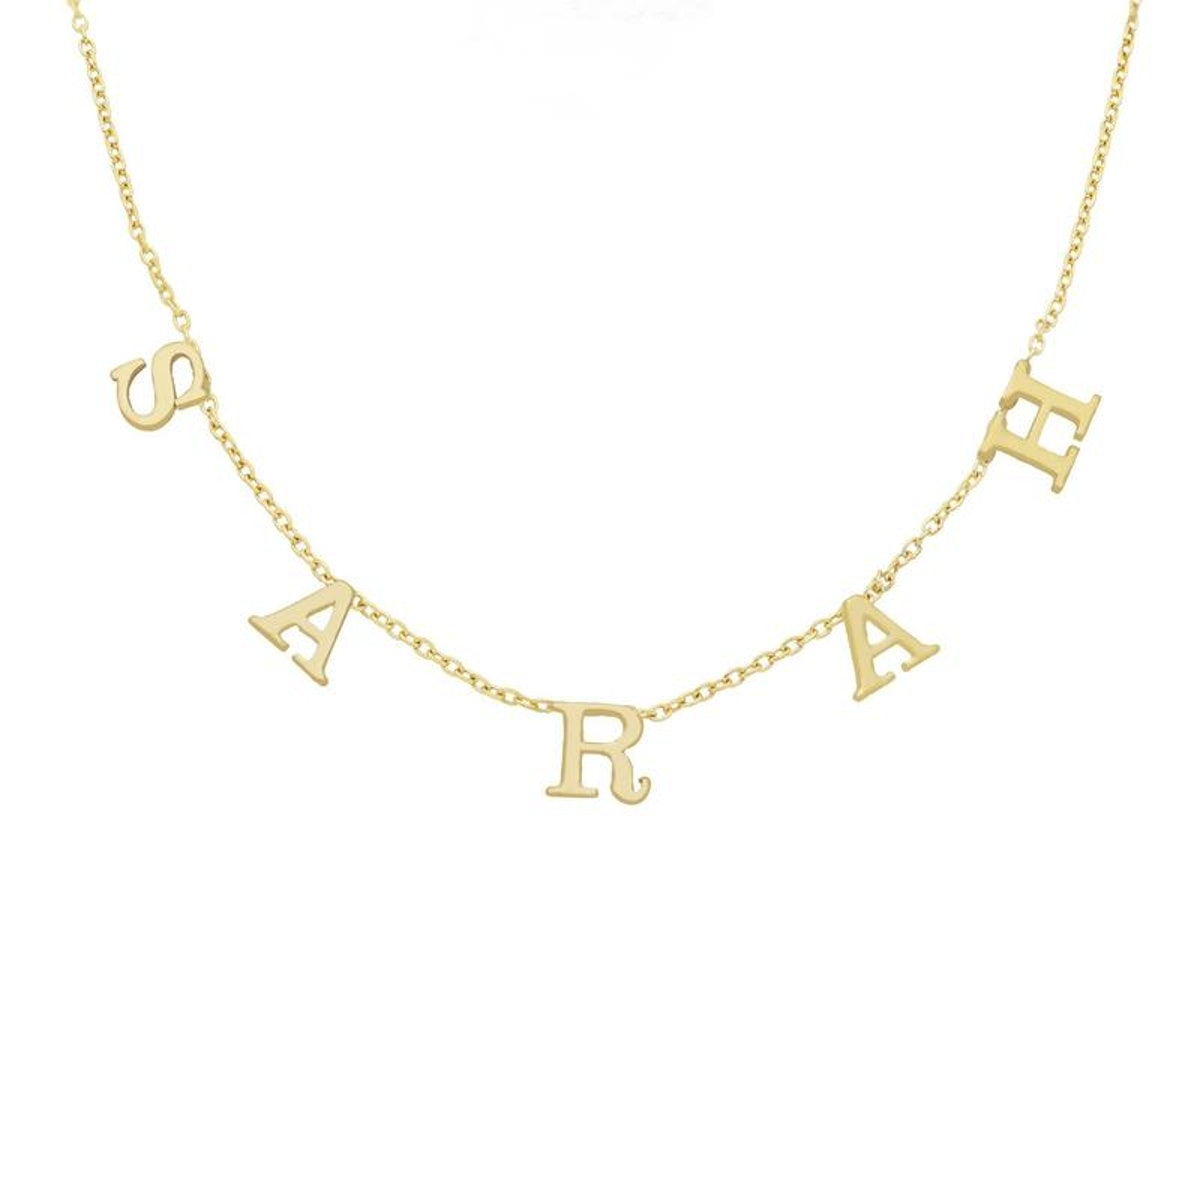 Tiny Spaced Out Name Necklace from Tres Colori.